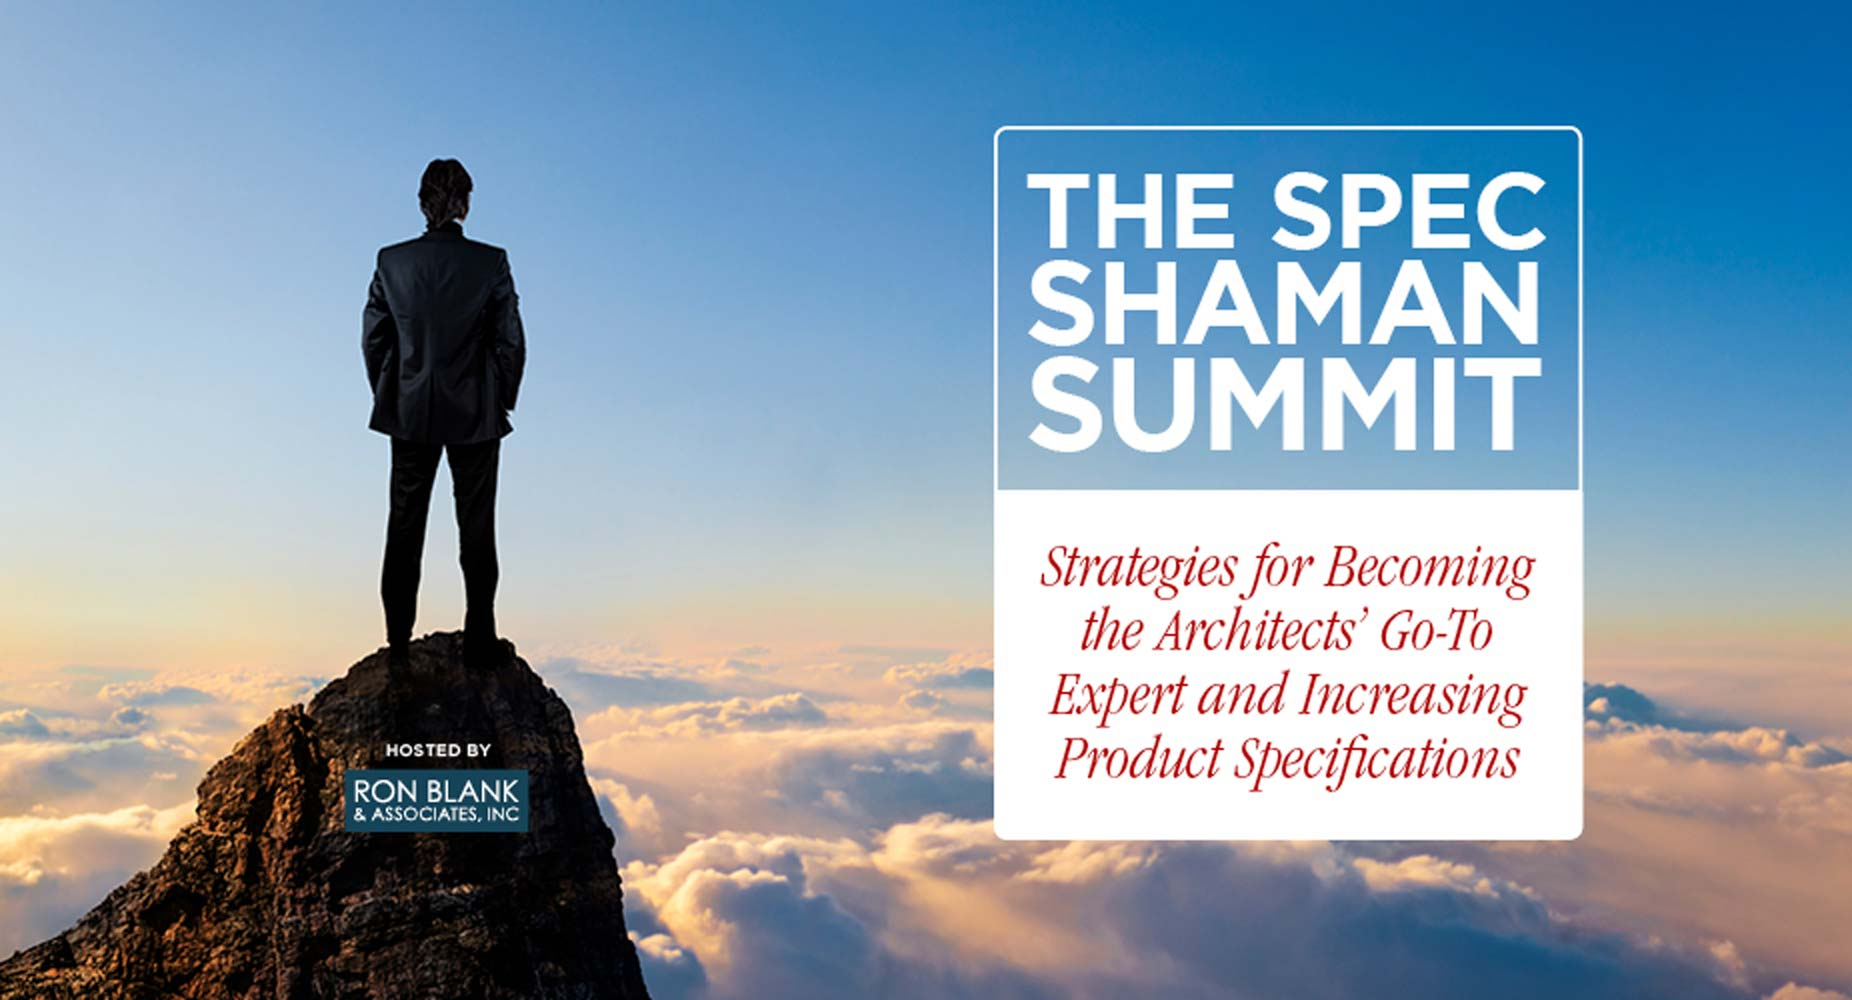 The Spec Shaman Summit: Strategies for Becoming the Architects' Go-To Expert and Increasing Product Specifications